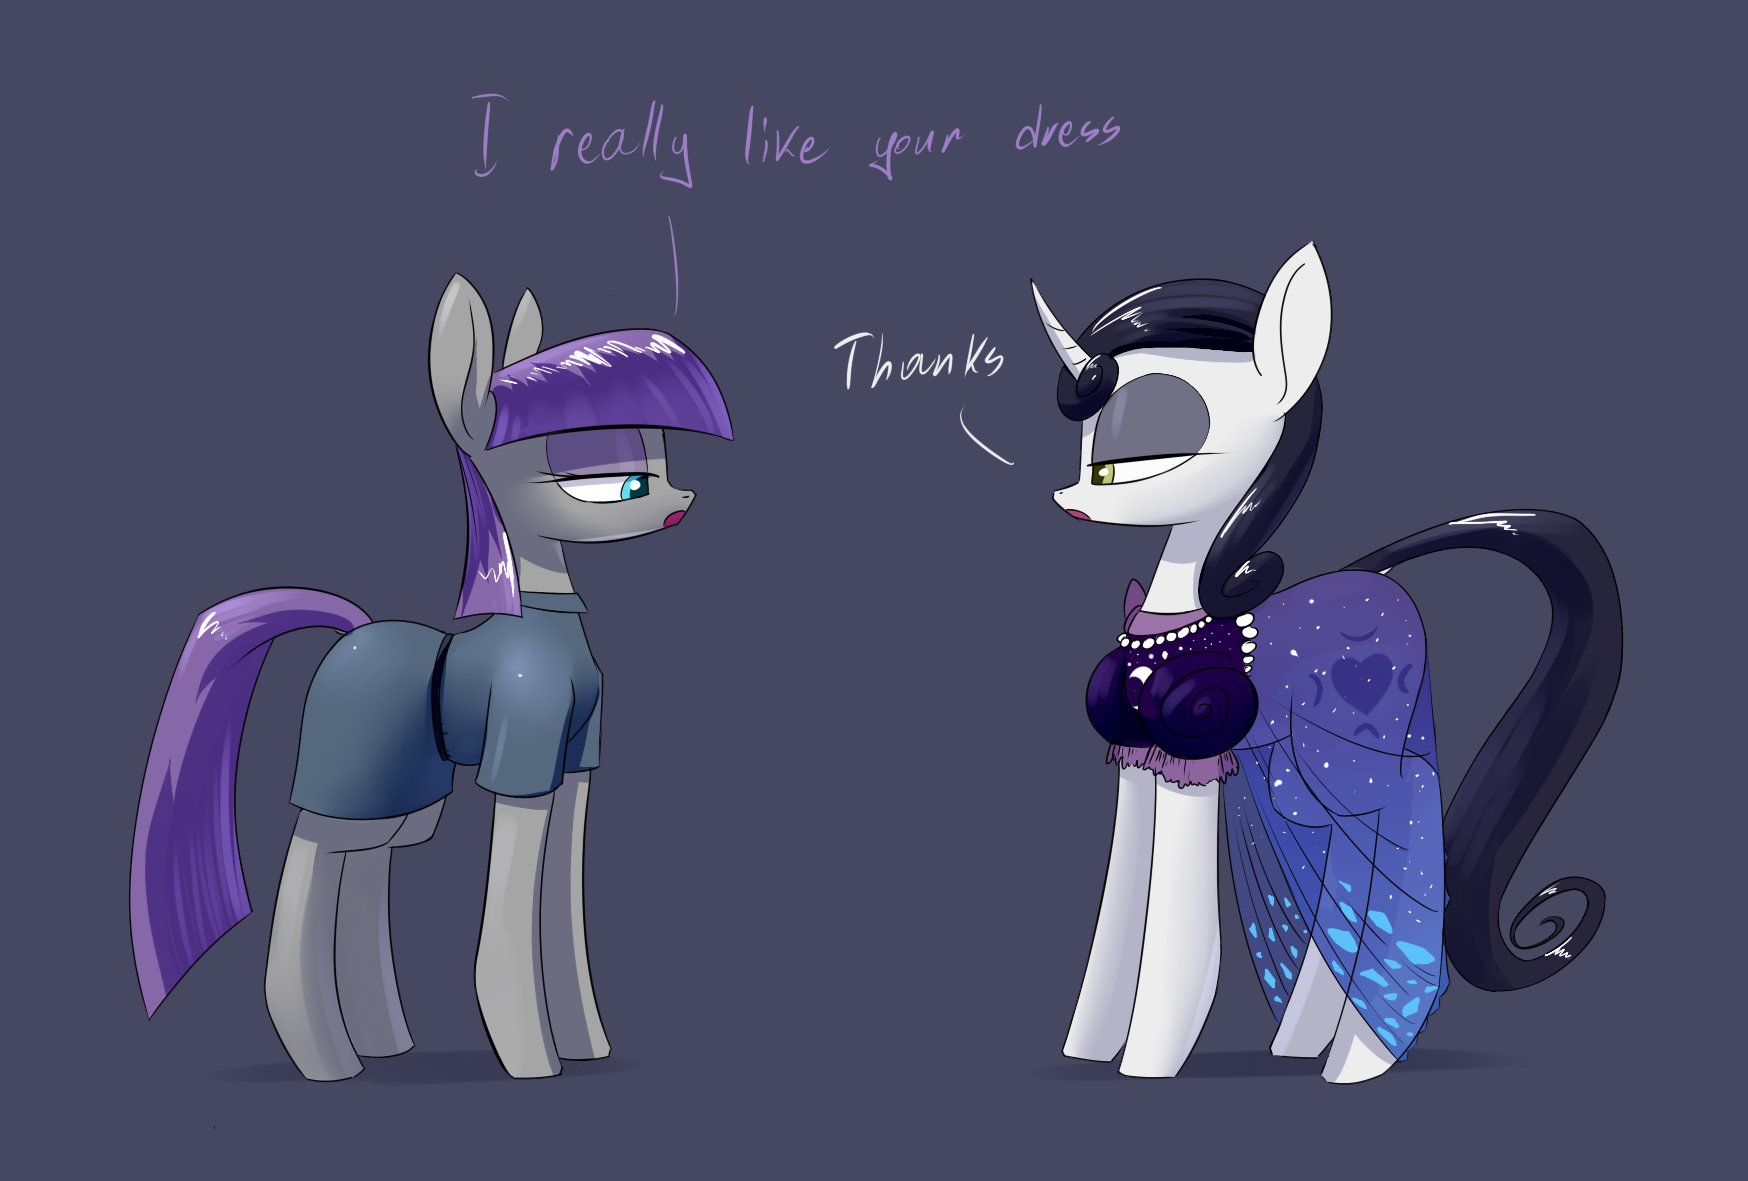 http://orig06.deviantart.net/6d96/f/2015/260/7/b/maud_loves_style_by_underpable-d99x0vh.png